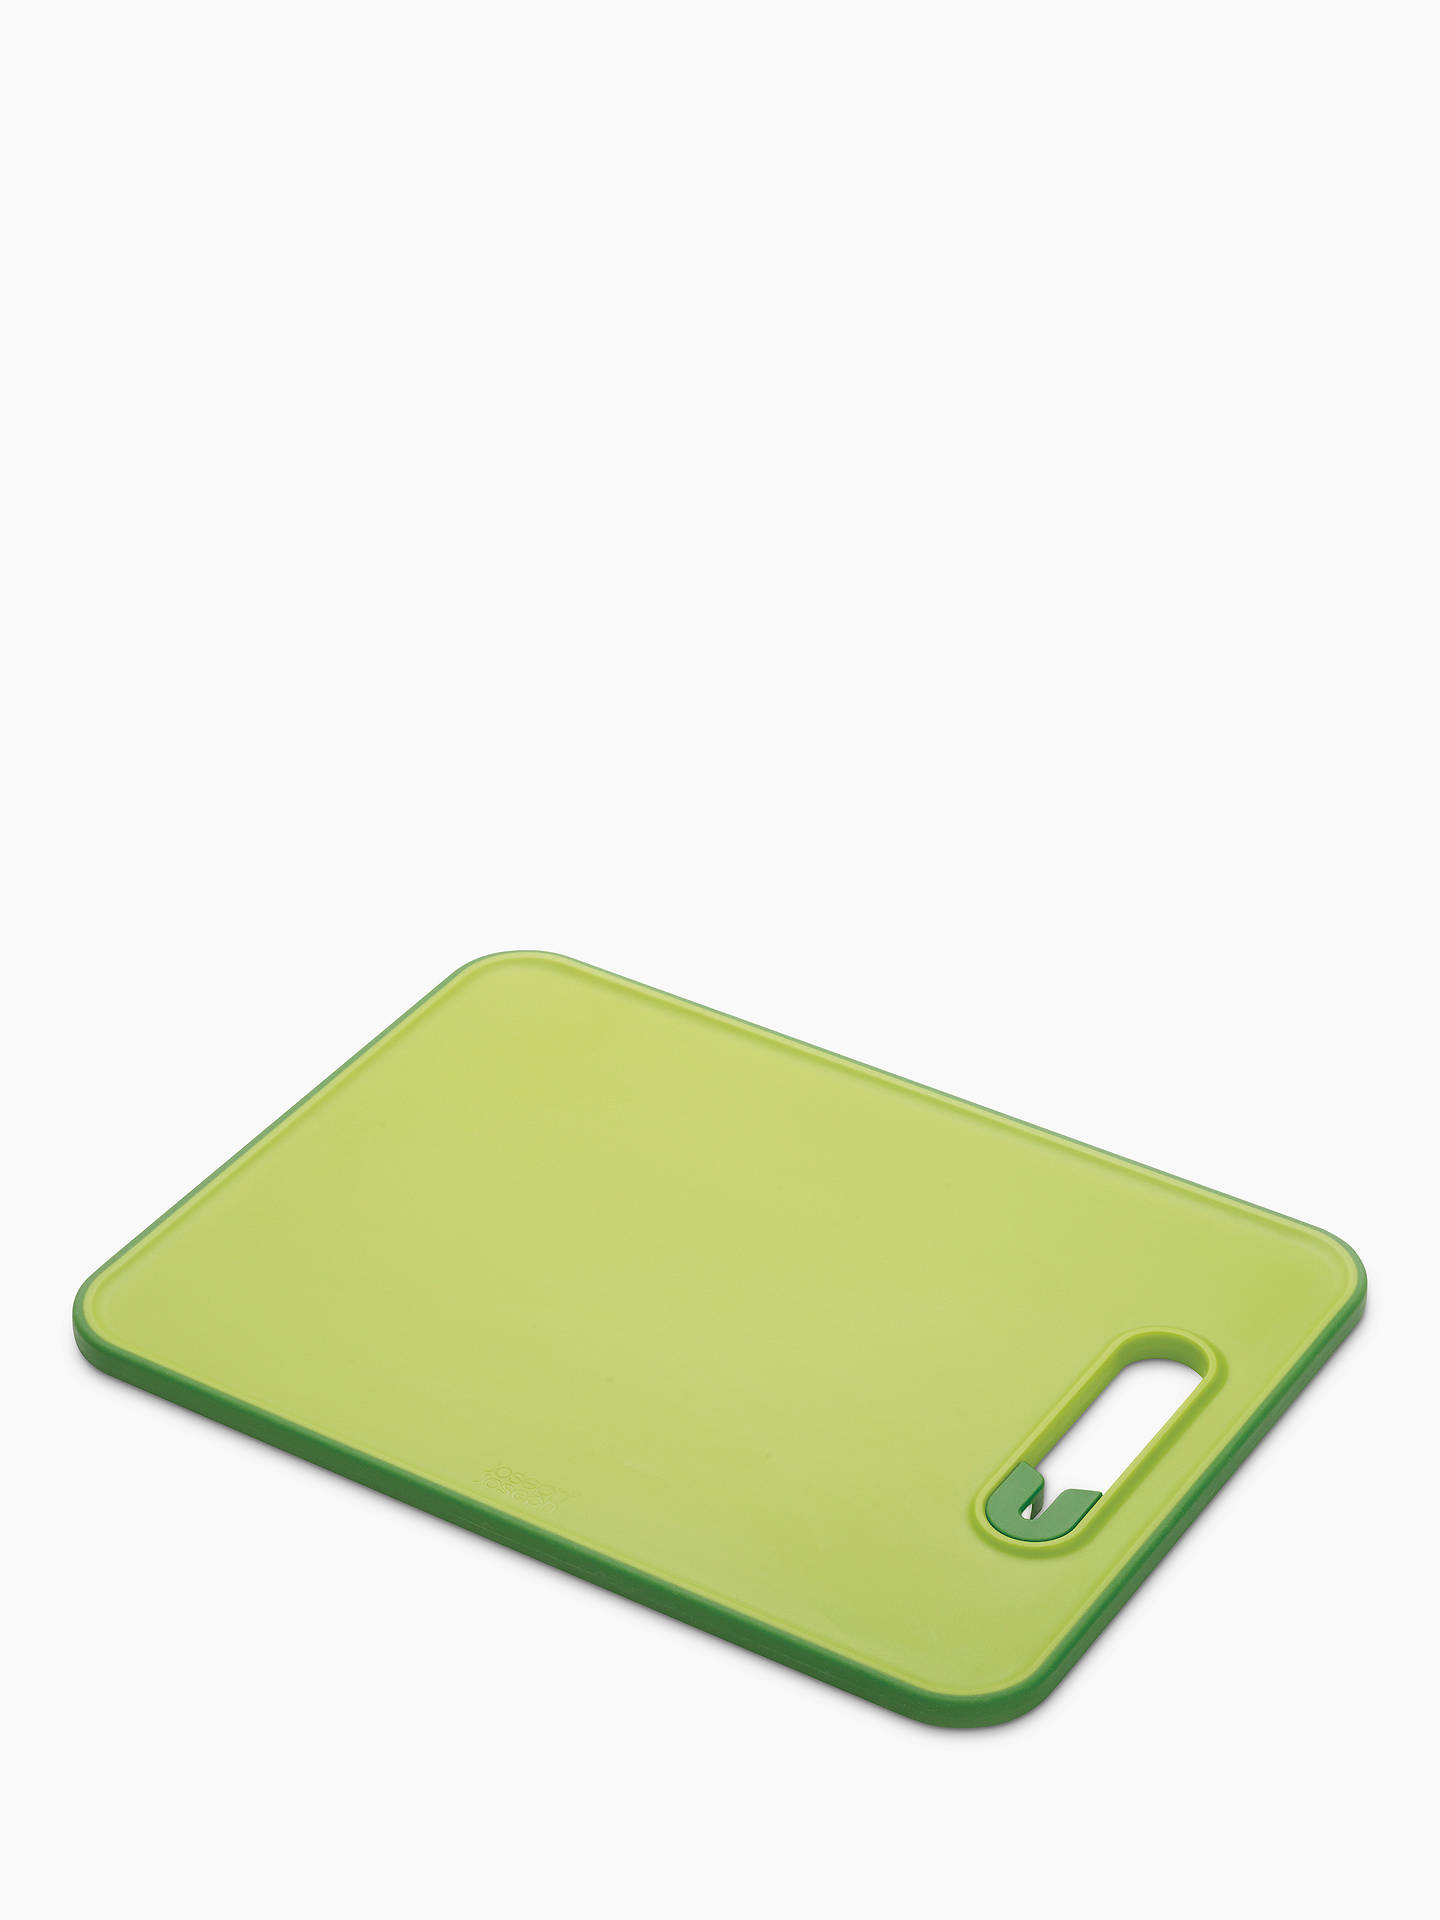 BuyJoseph Joseph Slice and Sharpen Chopping Board, Small, Green Online at johnlewis.com